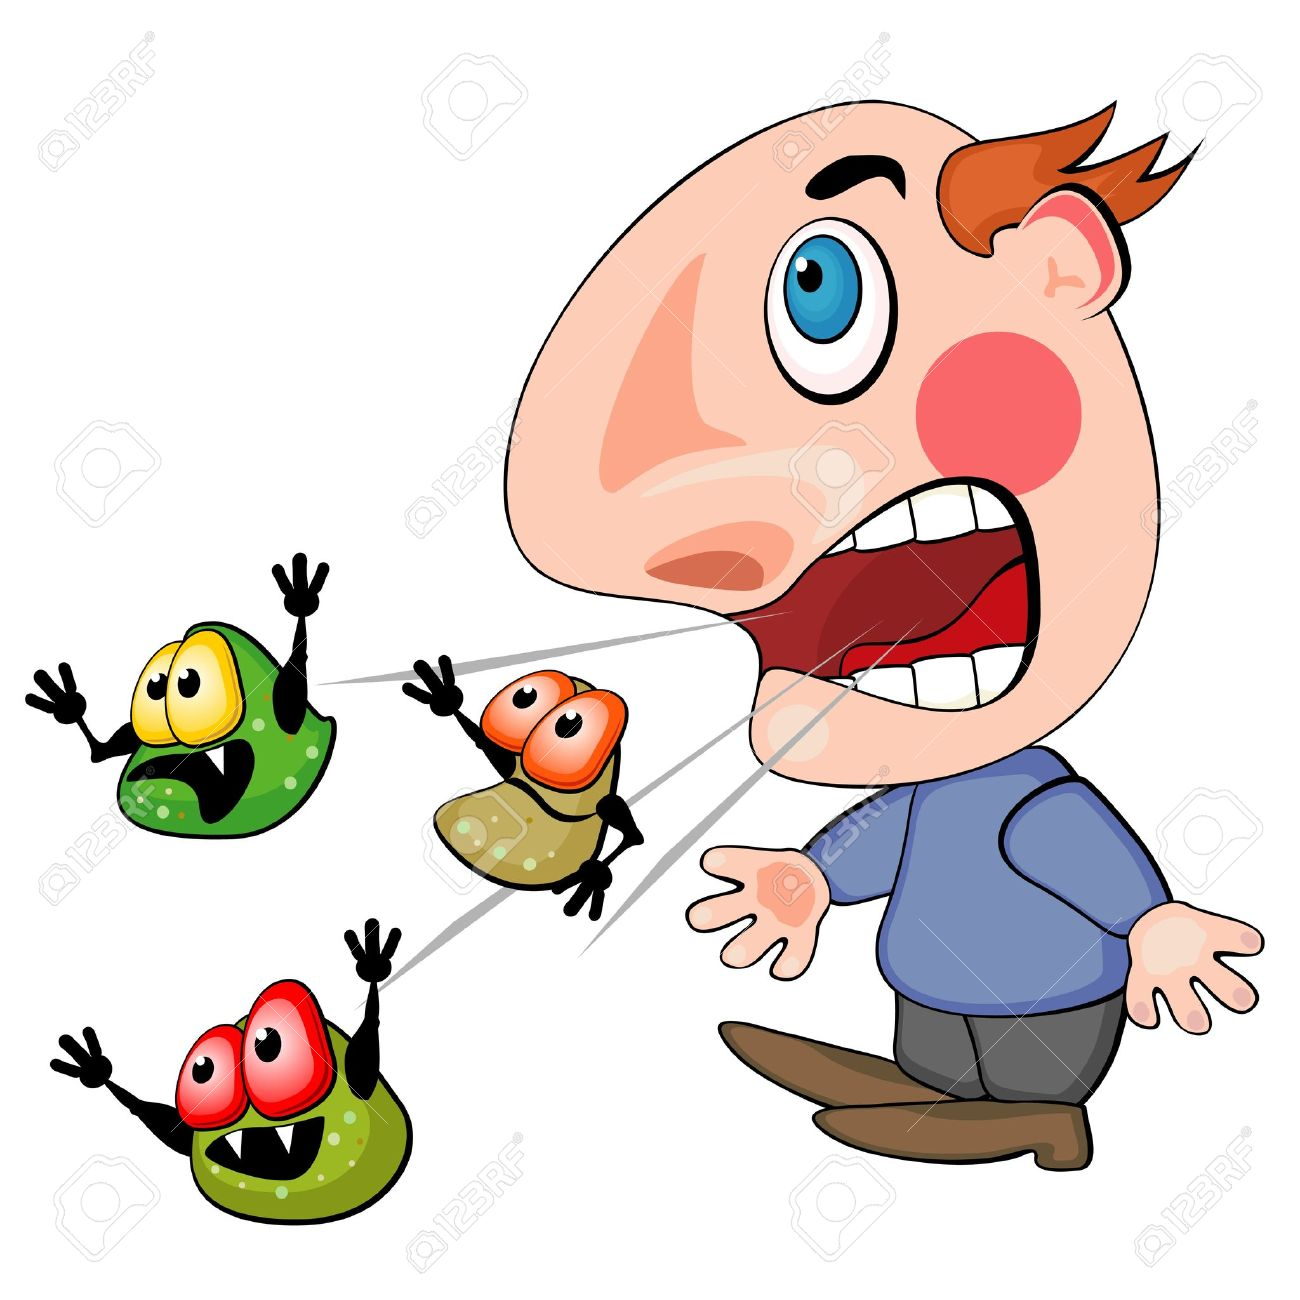 Coughing or sneezing man spreading germs of his disease Stock Vector - 17170318